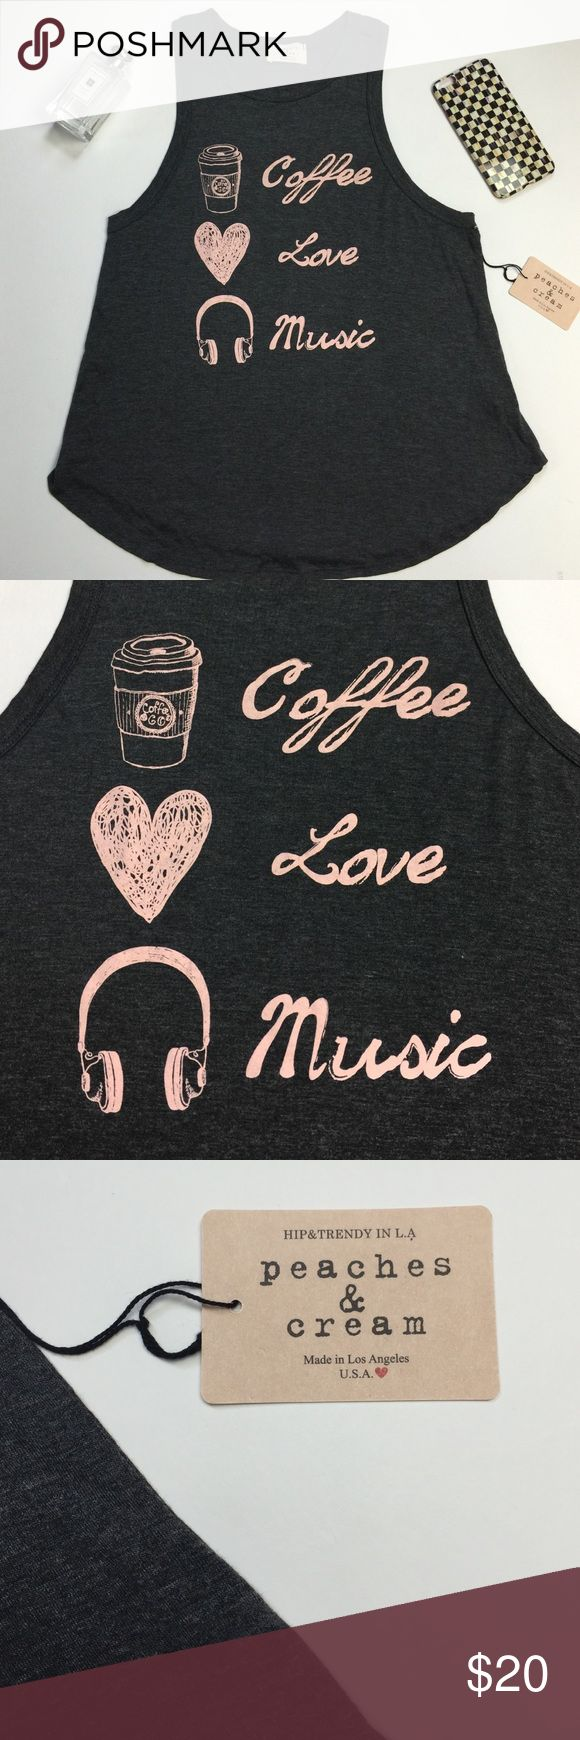 NWT grey graphic tank New with tags cute tank Coffee love music similar to wild fox brand made in lid Angeles USA Tops Muscle Tees